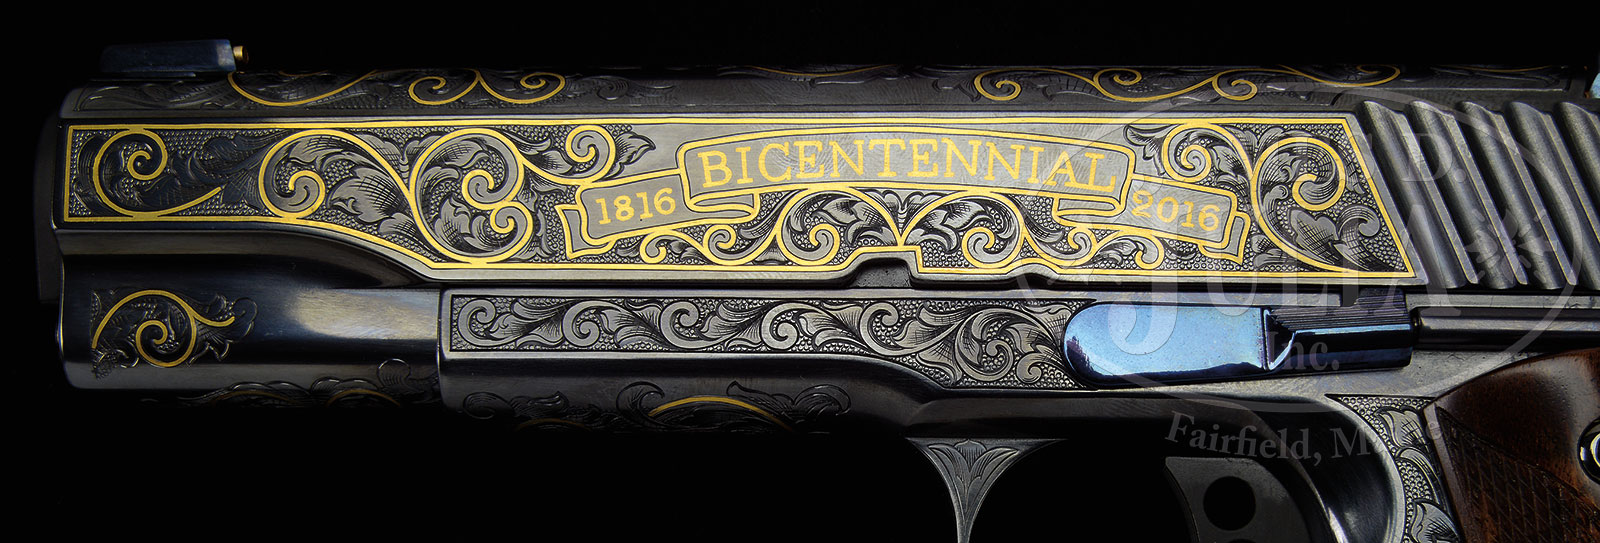 TRULY SPECTACULAR REMINGTON BICENTENNIAL THREE GUN SET